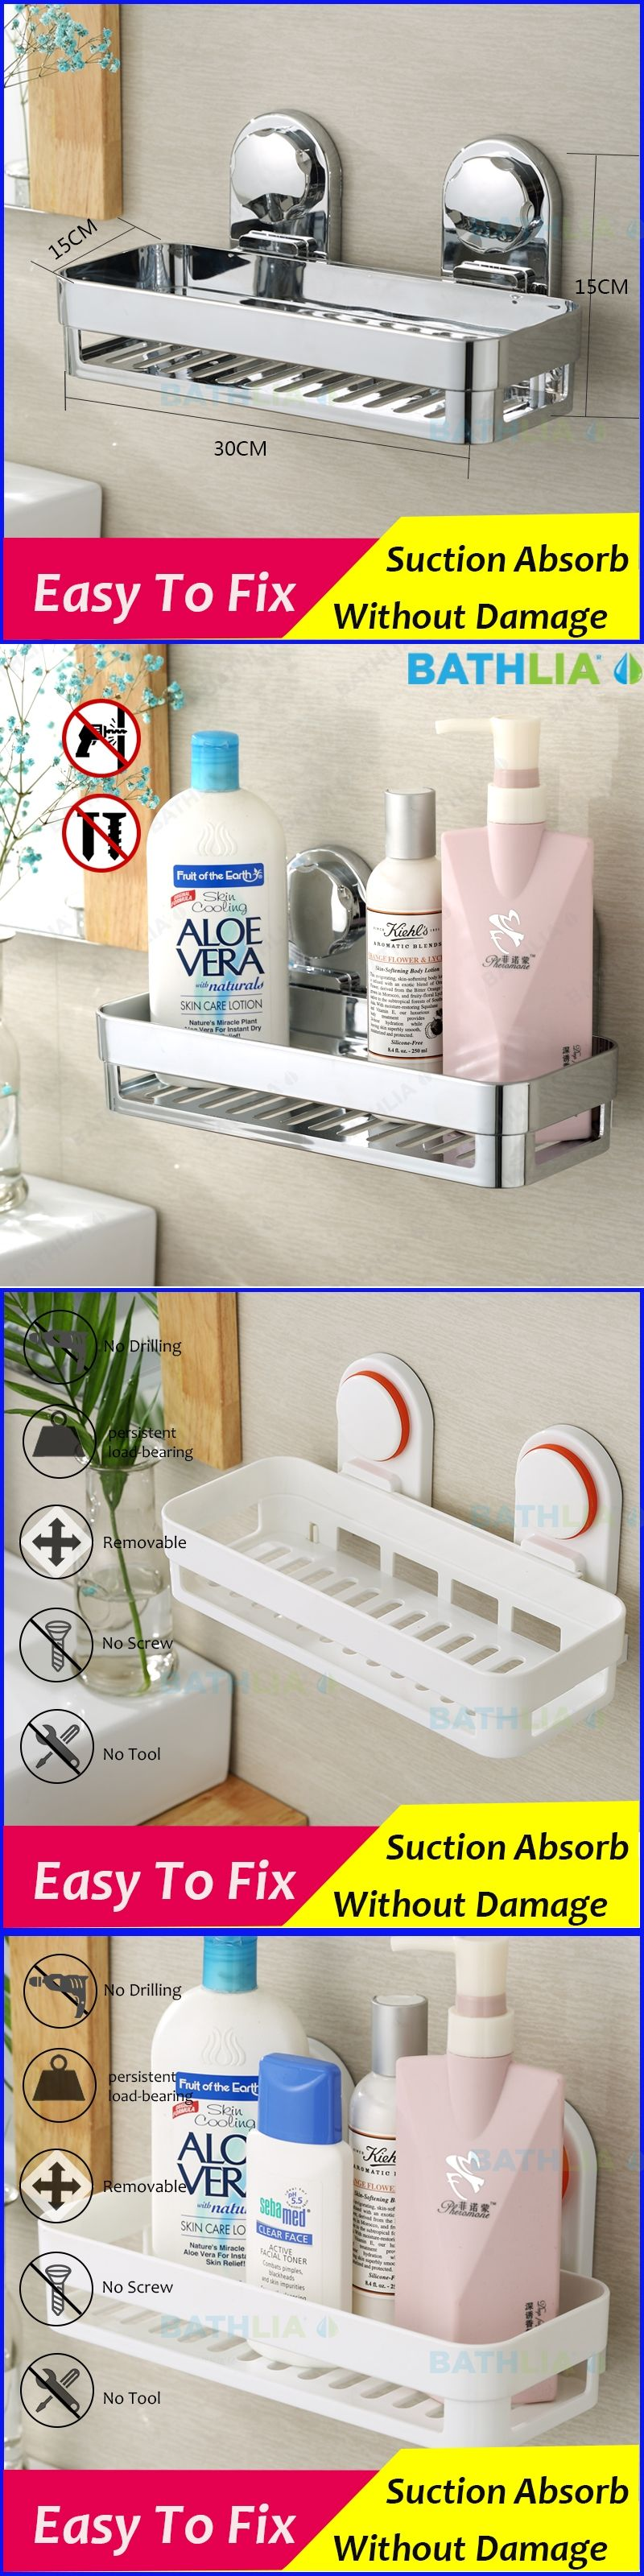 Bathroom Accessories Corner Rack Shower Caddy Shelf Bathroom Shampoo Holder  With Suction Cup Super Big